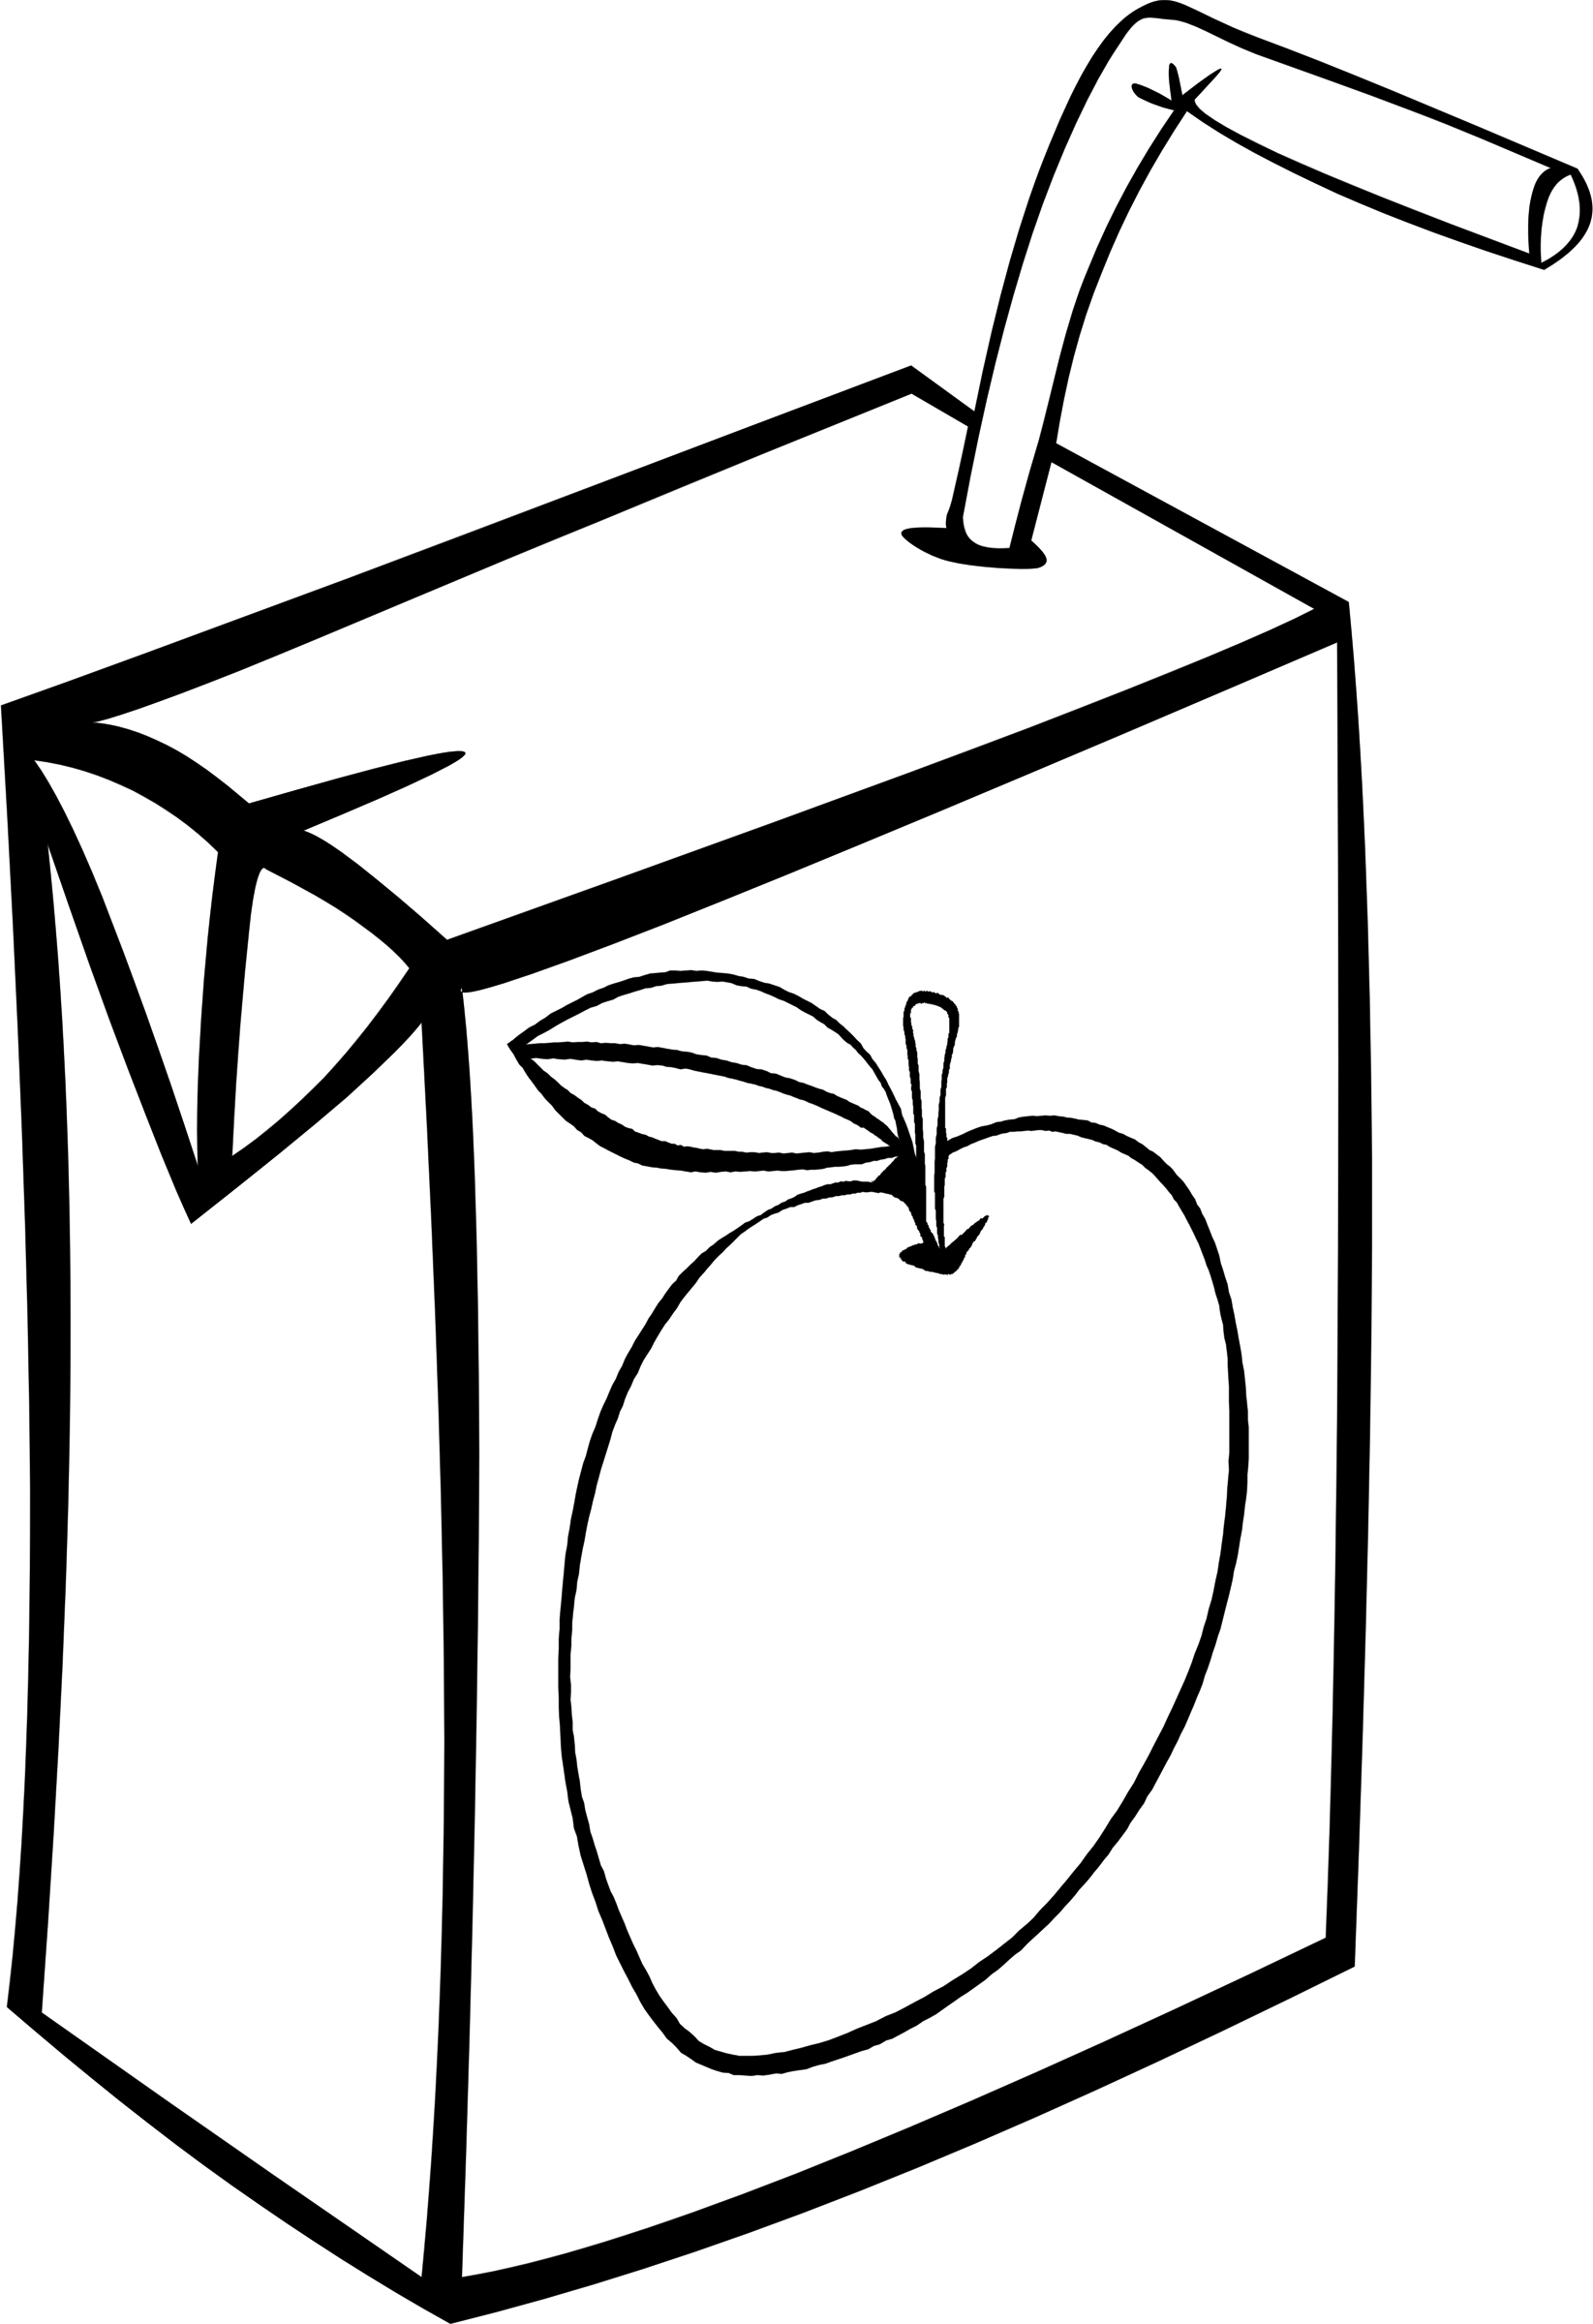 Black and white free clipart apple juice picture transparent Clipart - Fast Food, Drinks, Juice, Apple picture transparent